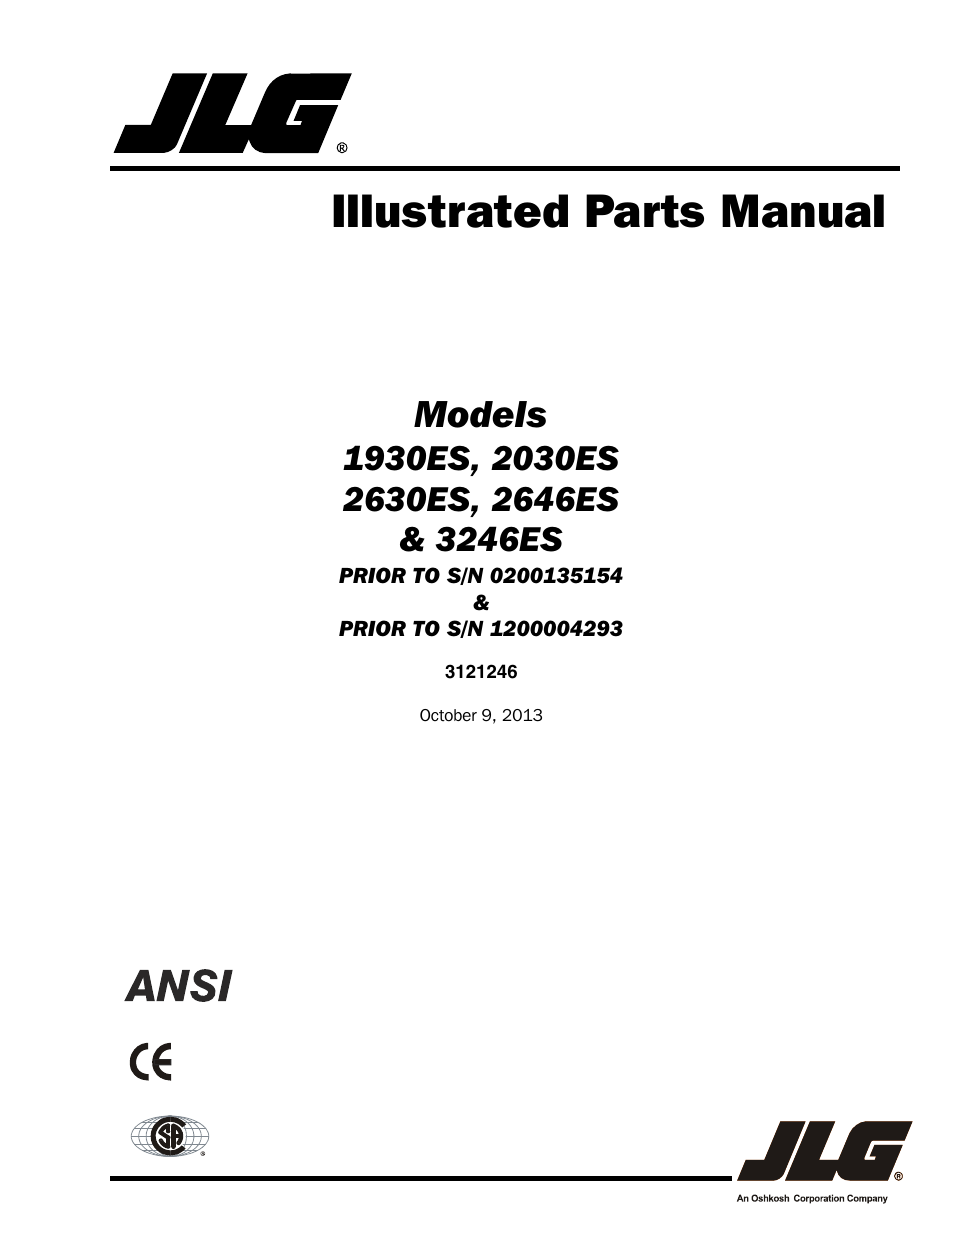 JLG 3246ES Parts Manual User Manual | 168 pages | Also for: 2646ES Parts  Manual, 2046ES Parts Manual, 2030ES Parts Manual, 1930ES Parts Manual